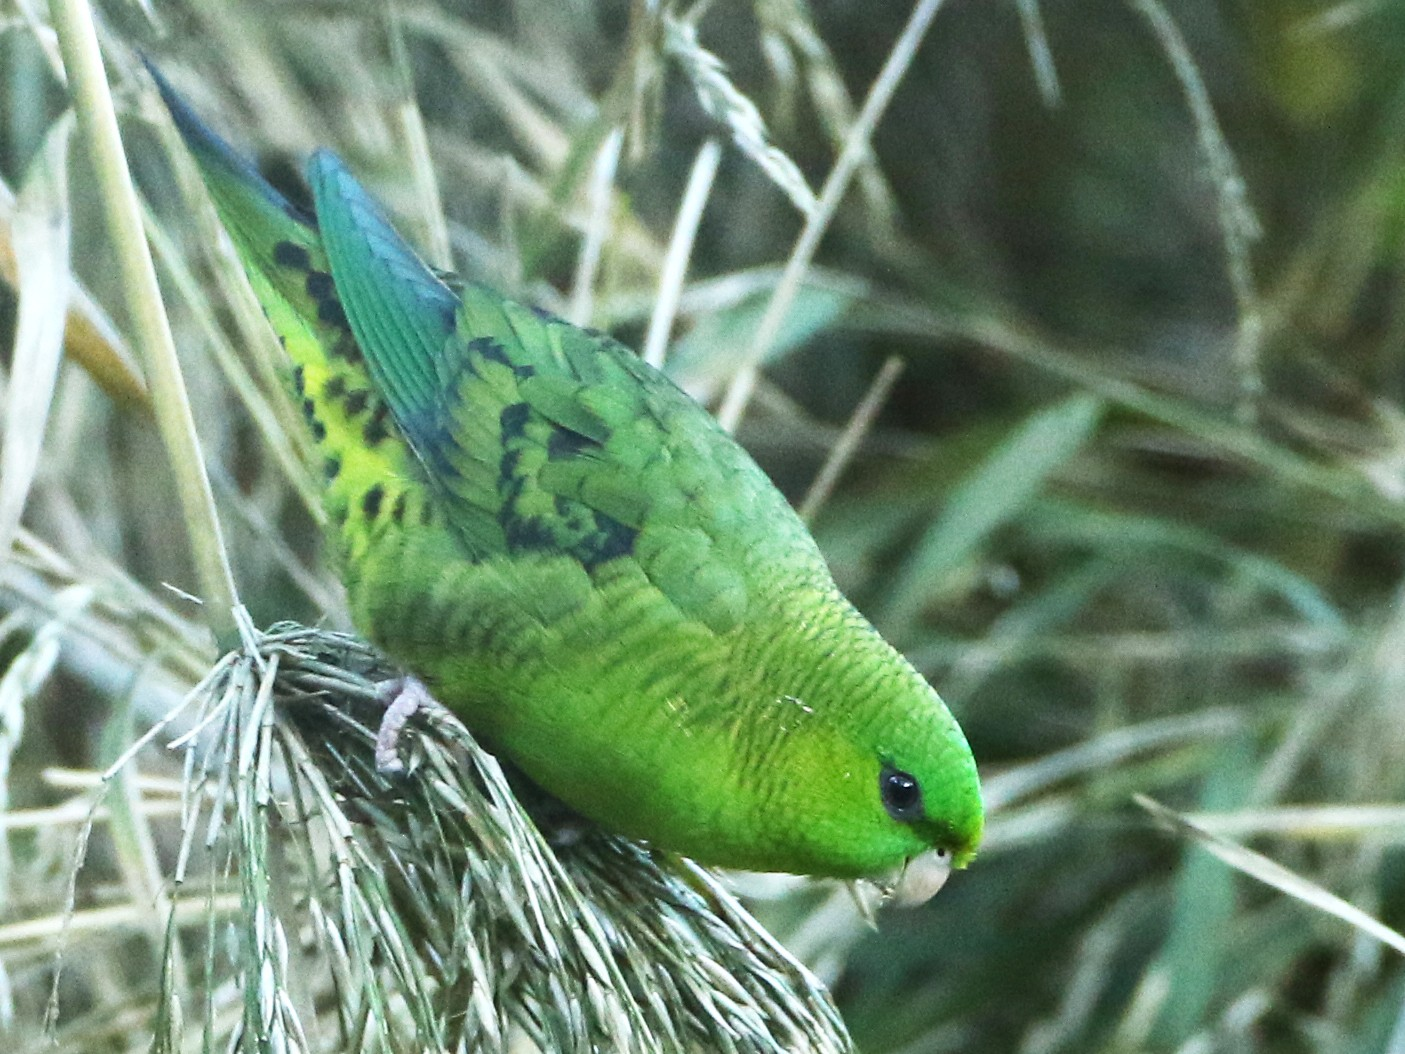 Barred Parakeet - Luke Seitz